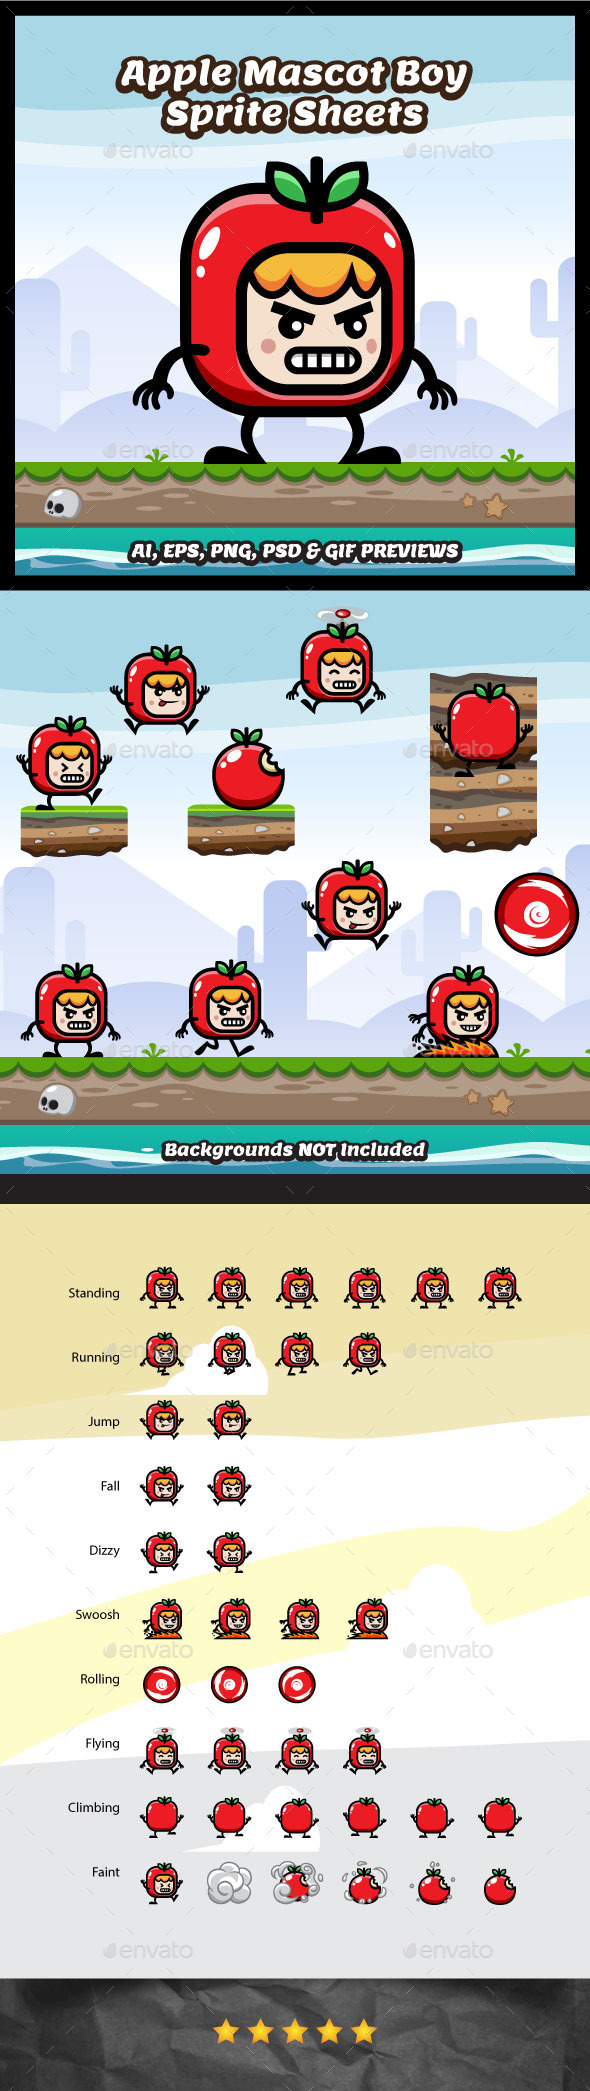 Red Apple Mascot Boy Game Character (Sprites)